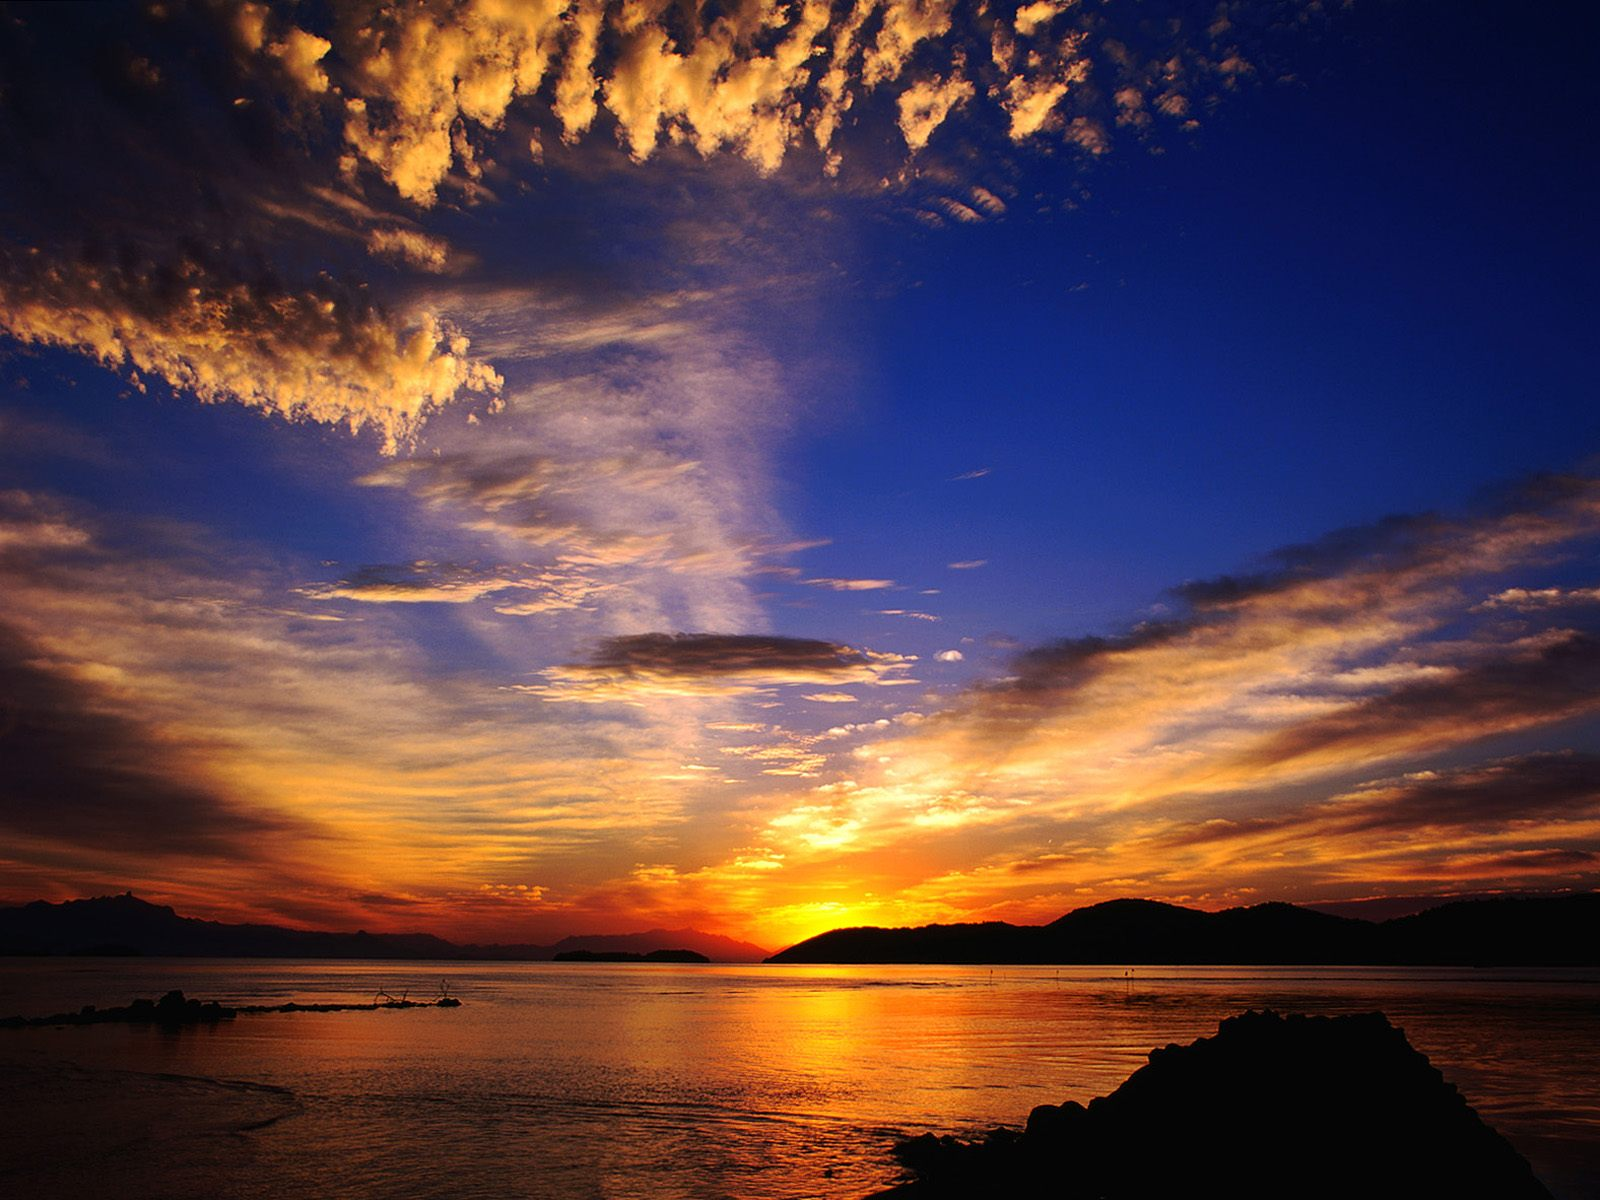 Download Popular Wallpapers 5 Stars: Sunset Hd Wallpapers